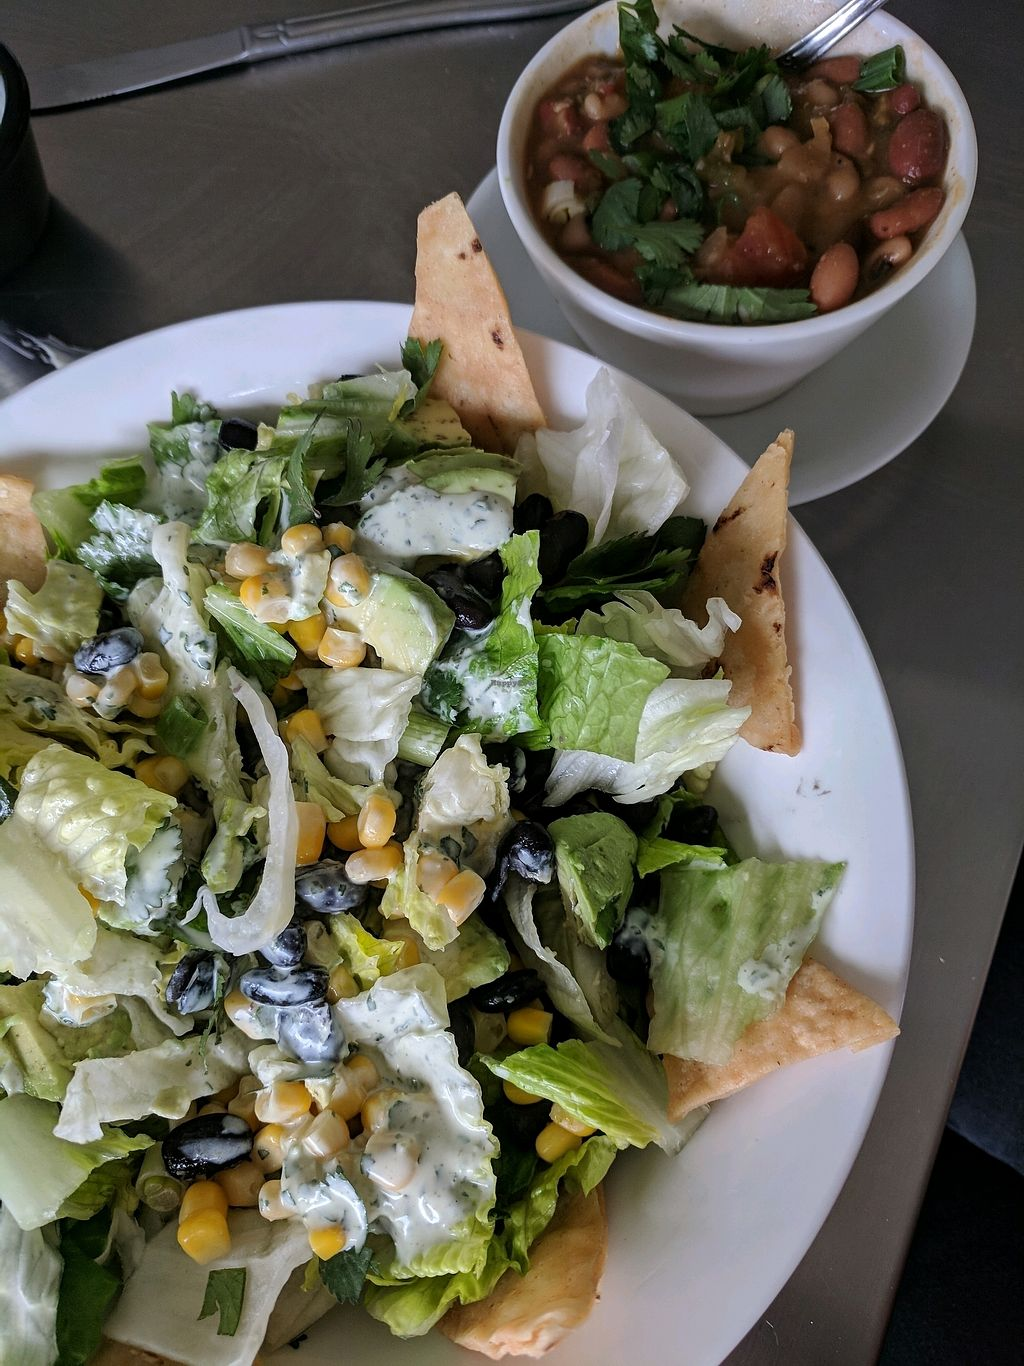 """Photo of Galley Bite  by <a href=""""/members/profile/canvy"""">canvy</a> <br/>Southwest Salad and Vegan bean soup. Delish! <br/> March 13, 2018  - <a href='/contact/abuse/image/114435/370197'>Report</a>"""